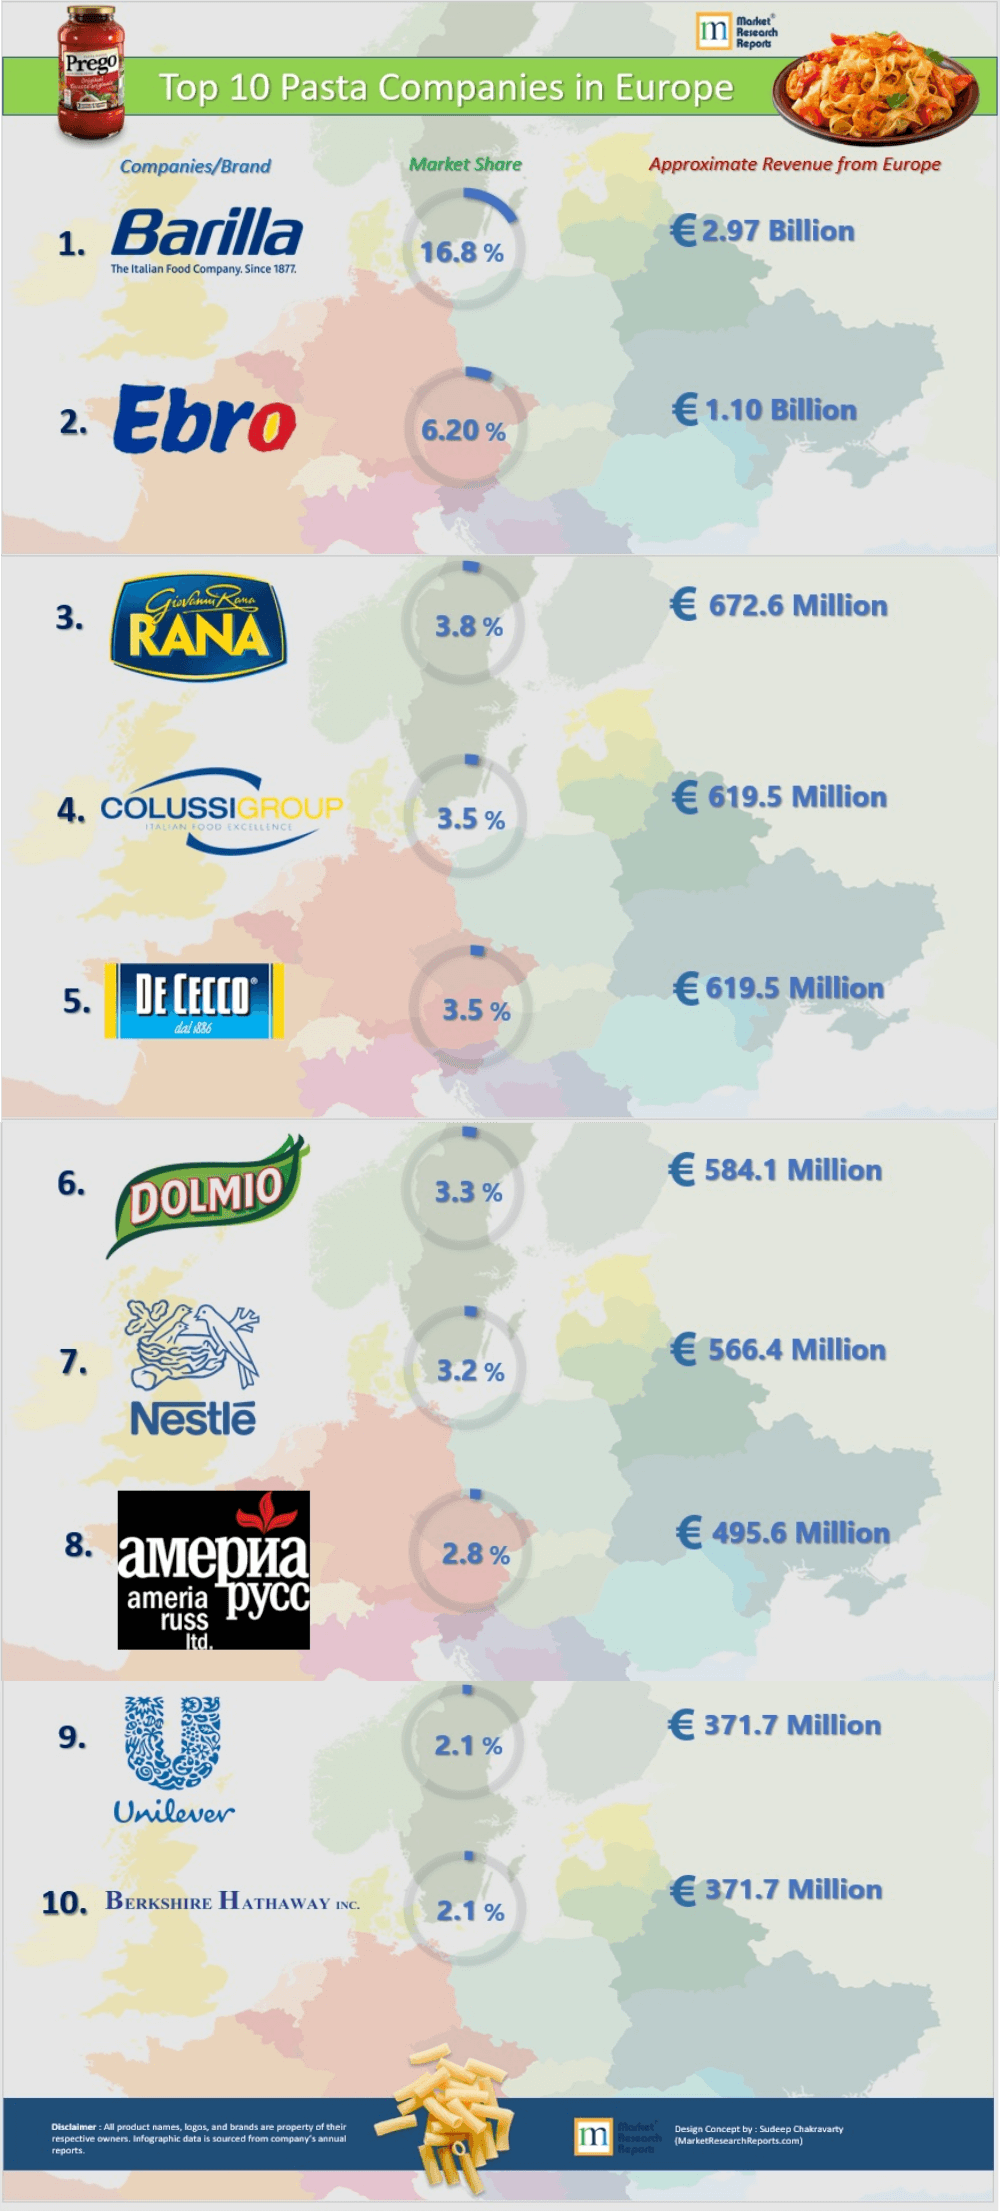 Europe's 10 Largest Pasta and Pasta Sauce Makers by Market Share